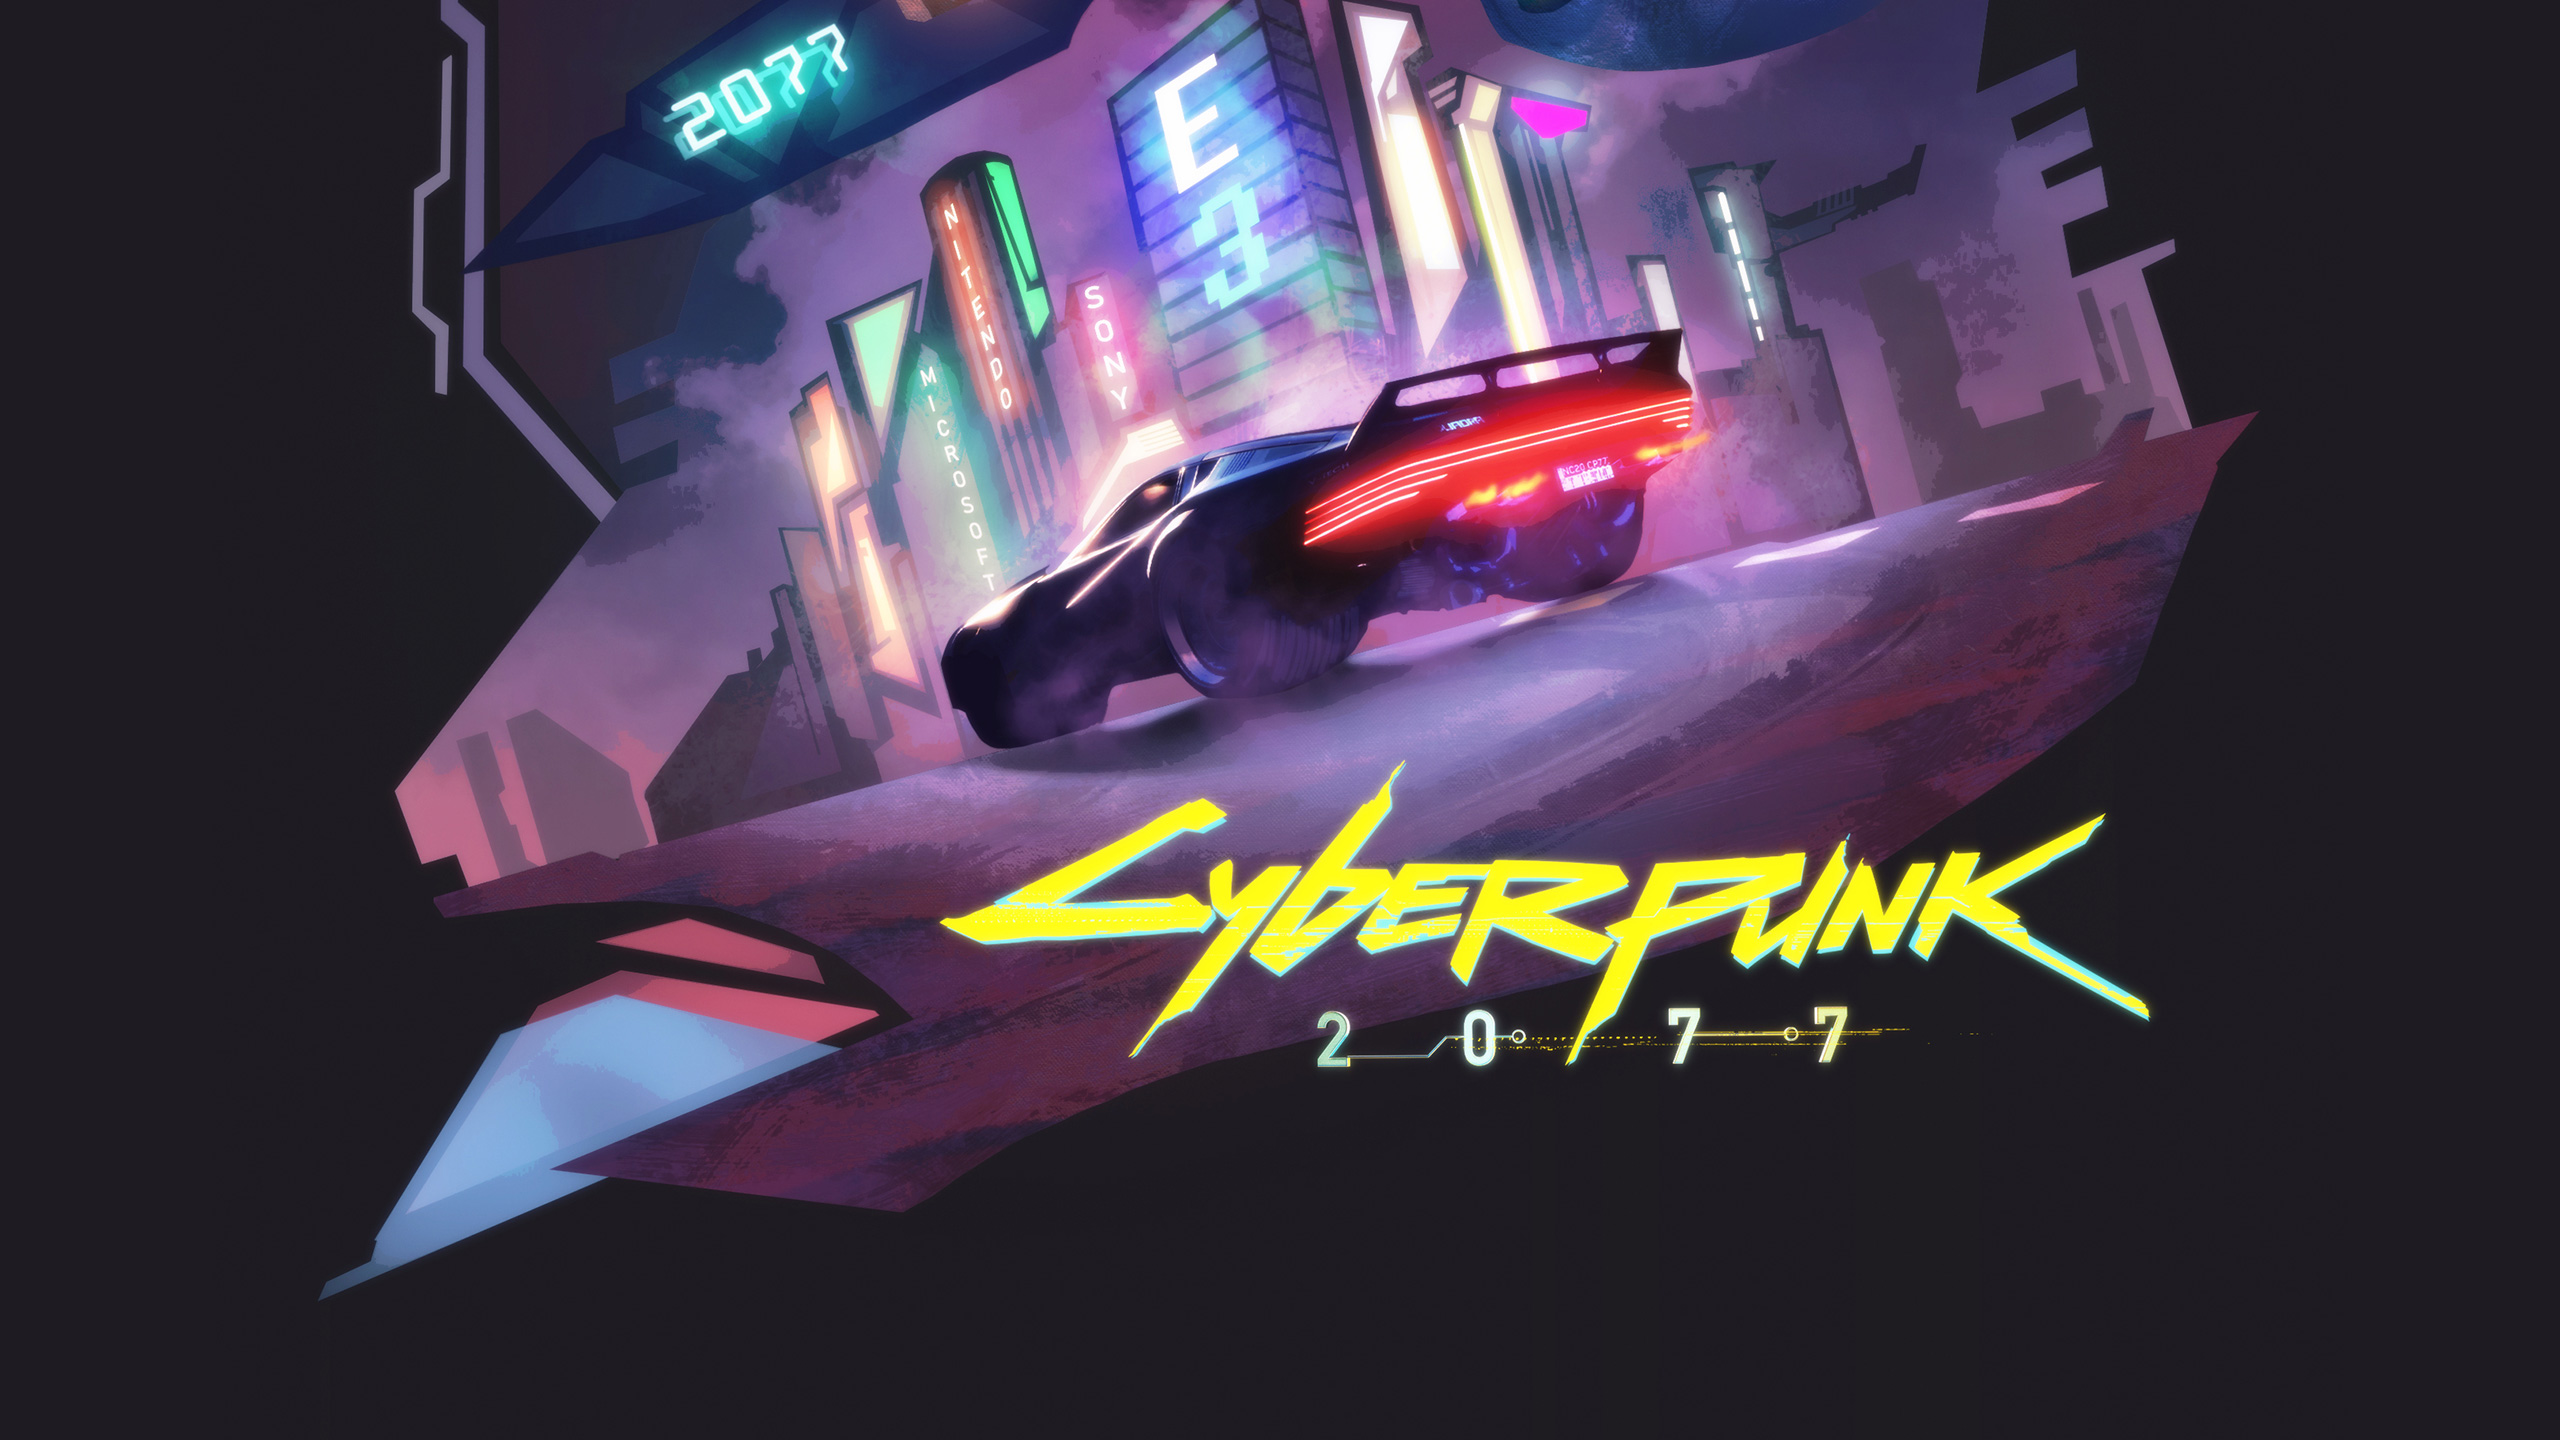 2560x1440 cyberpunk 2077 game fanart 1440p resolution hd